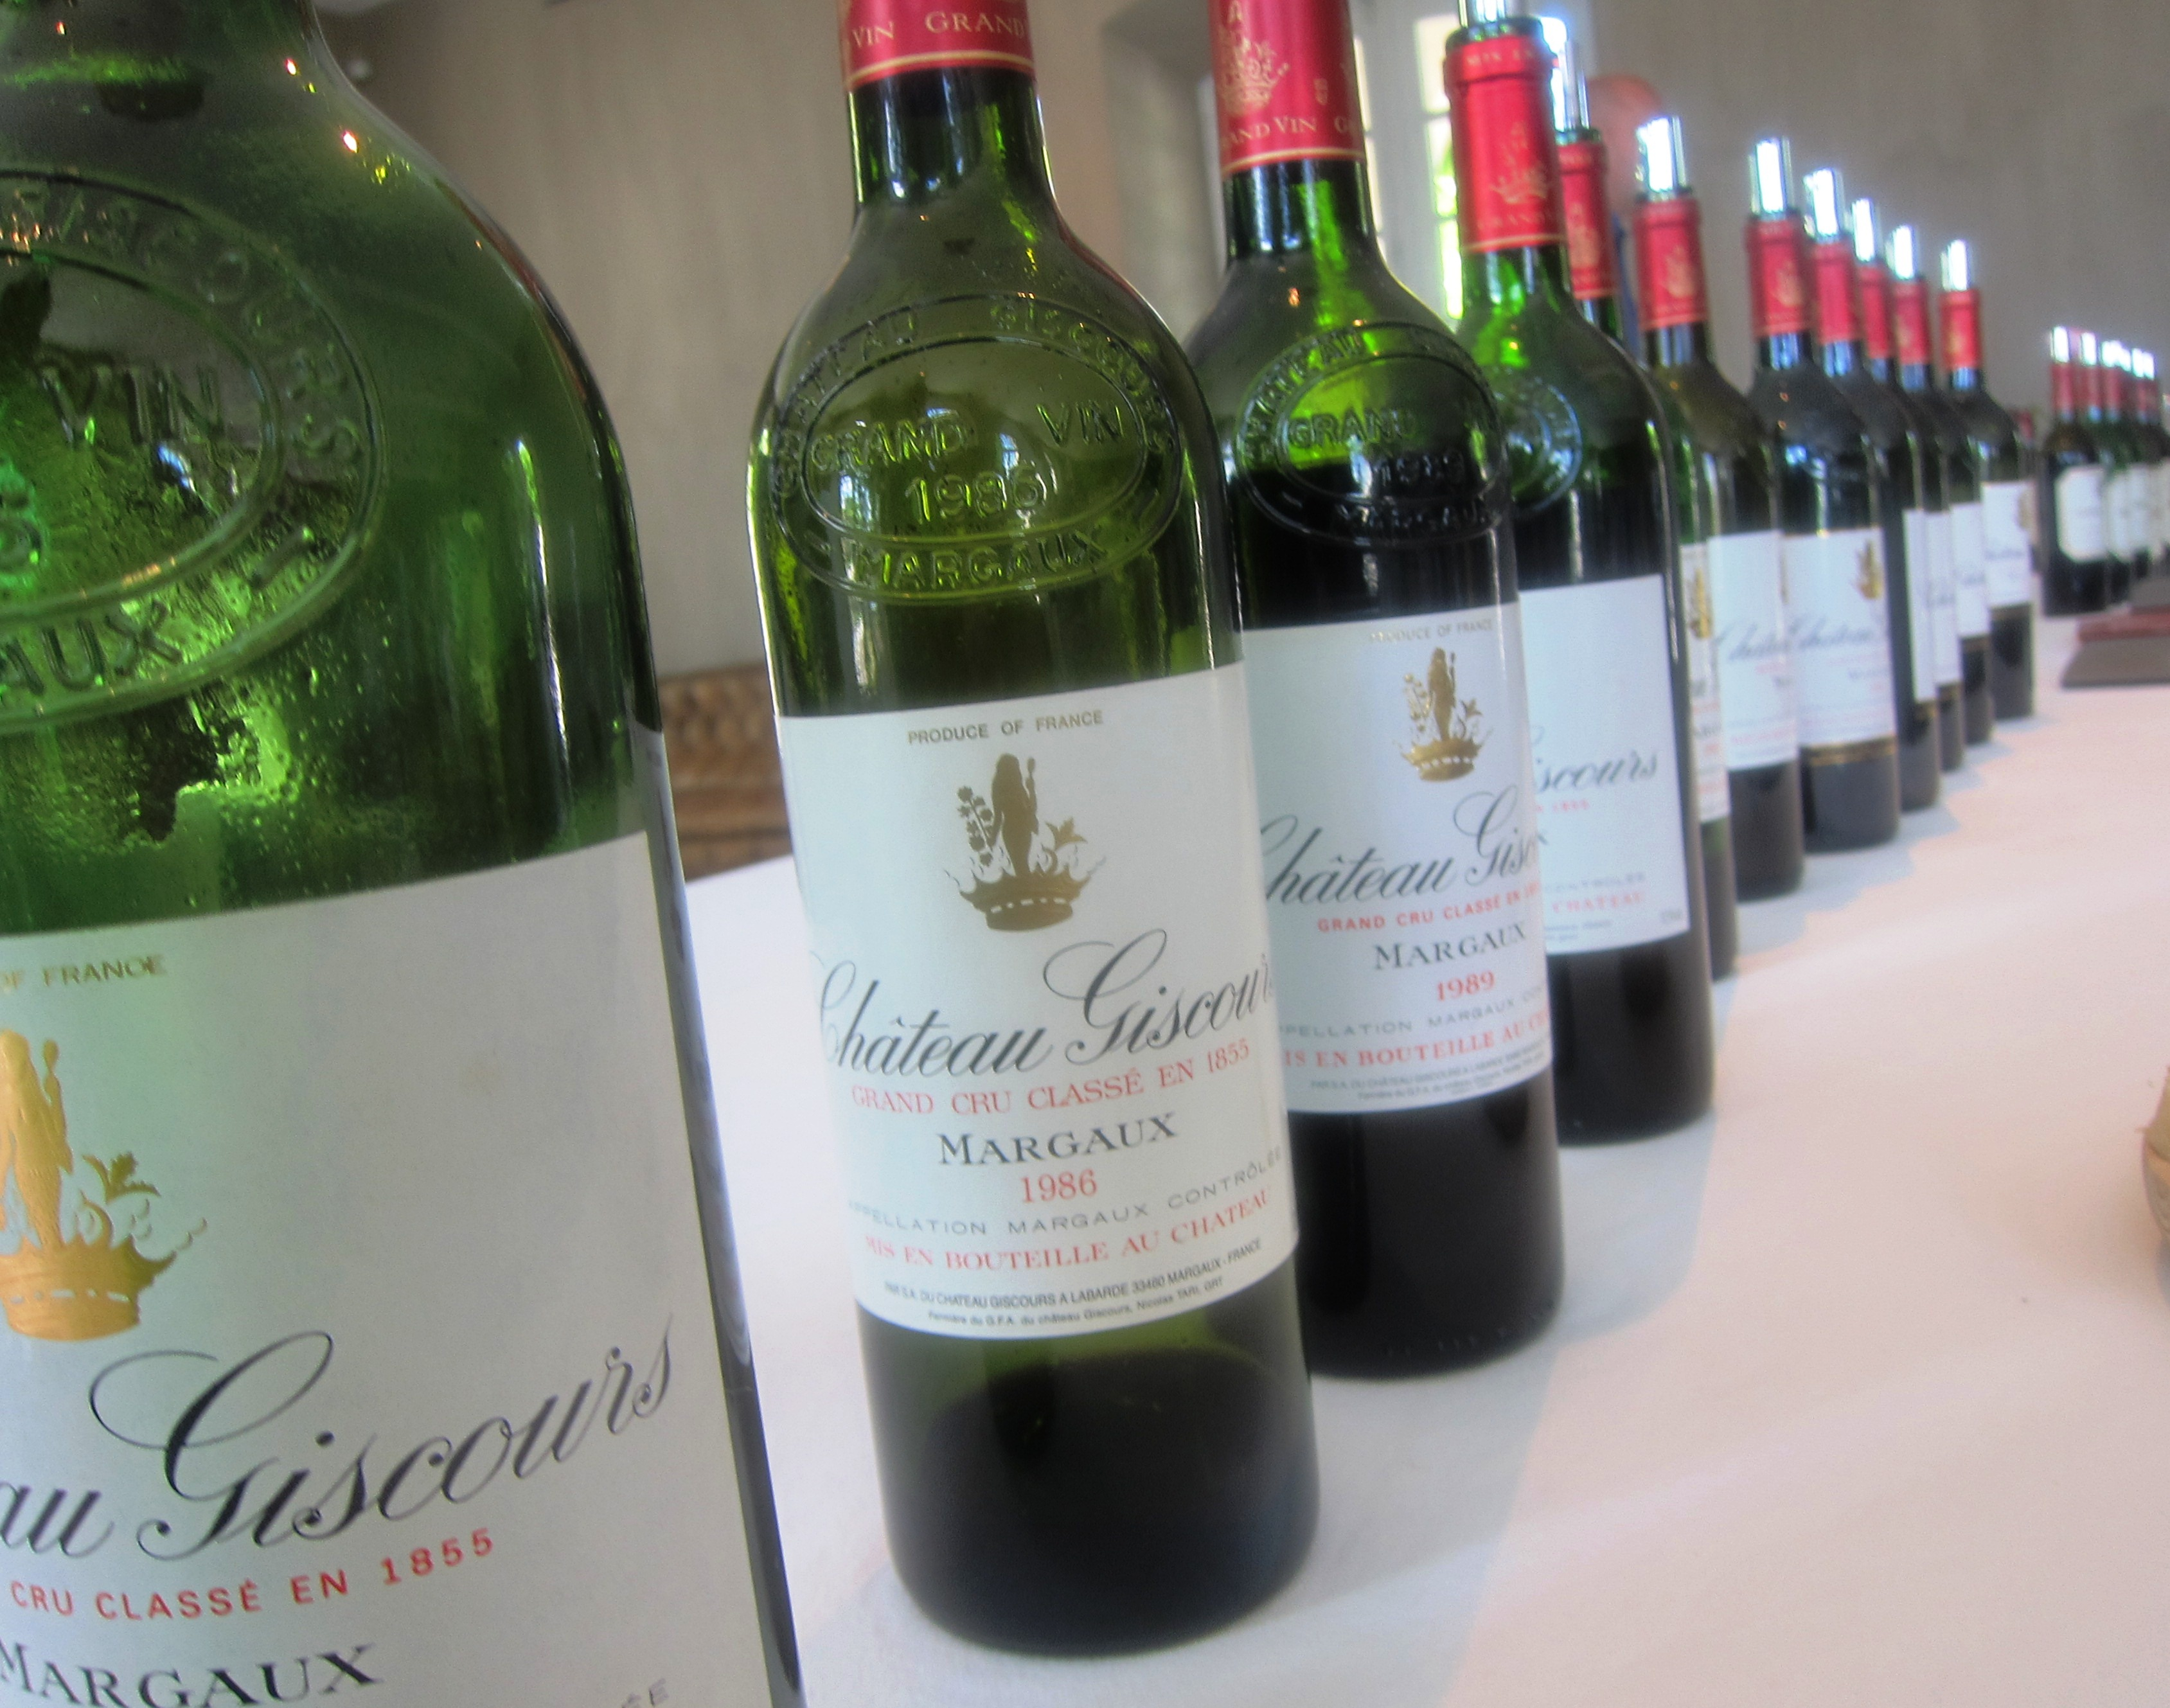 Giscours Margaux 5 Decades of Bordeaux Wine Tasted 1961-2010